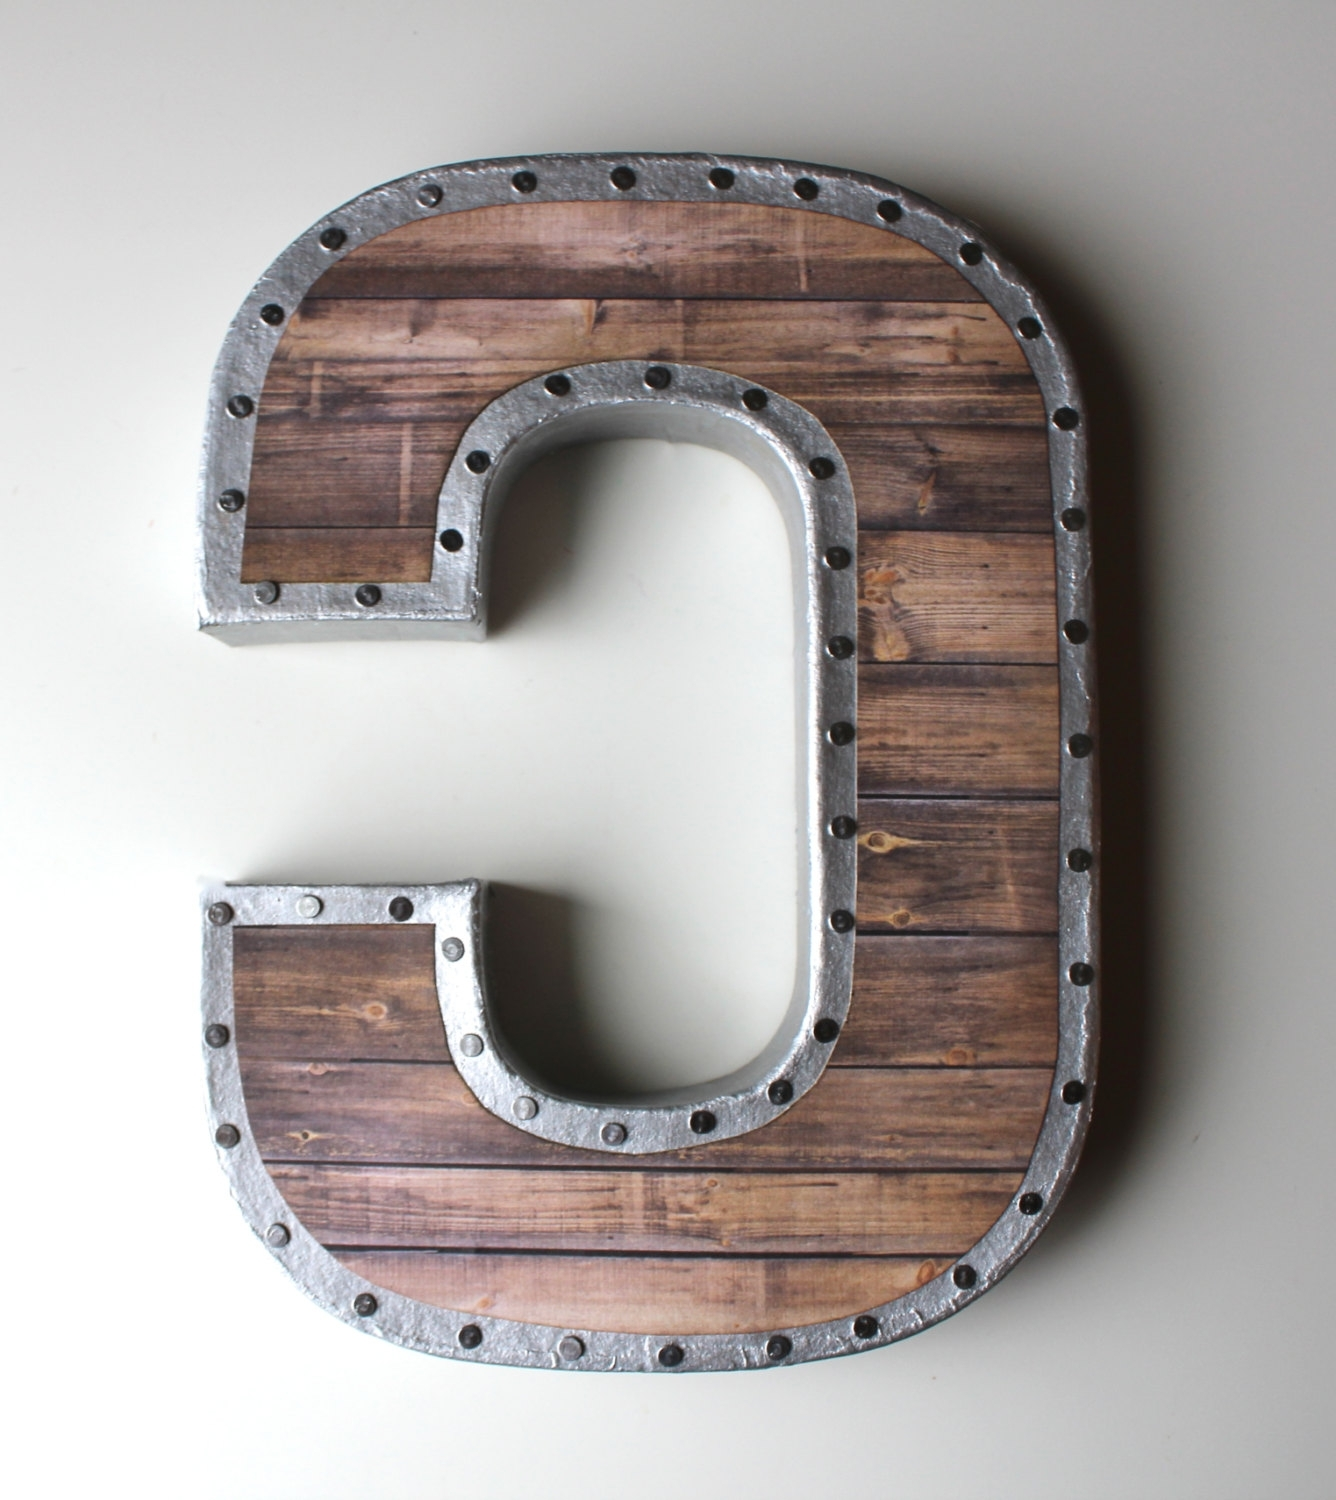 Vintage Metal Letters For The Wall – Blogtipsworld For Trendy Metal Letter Wall Art (Gallery 4 of 20)